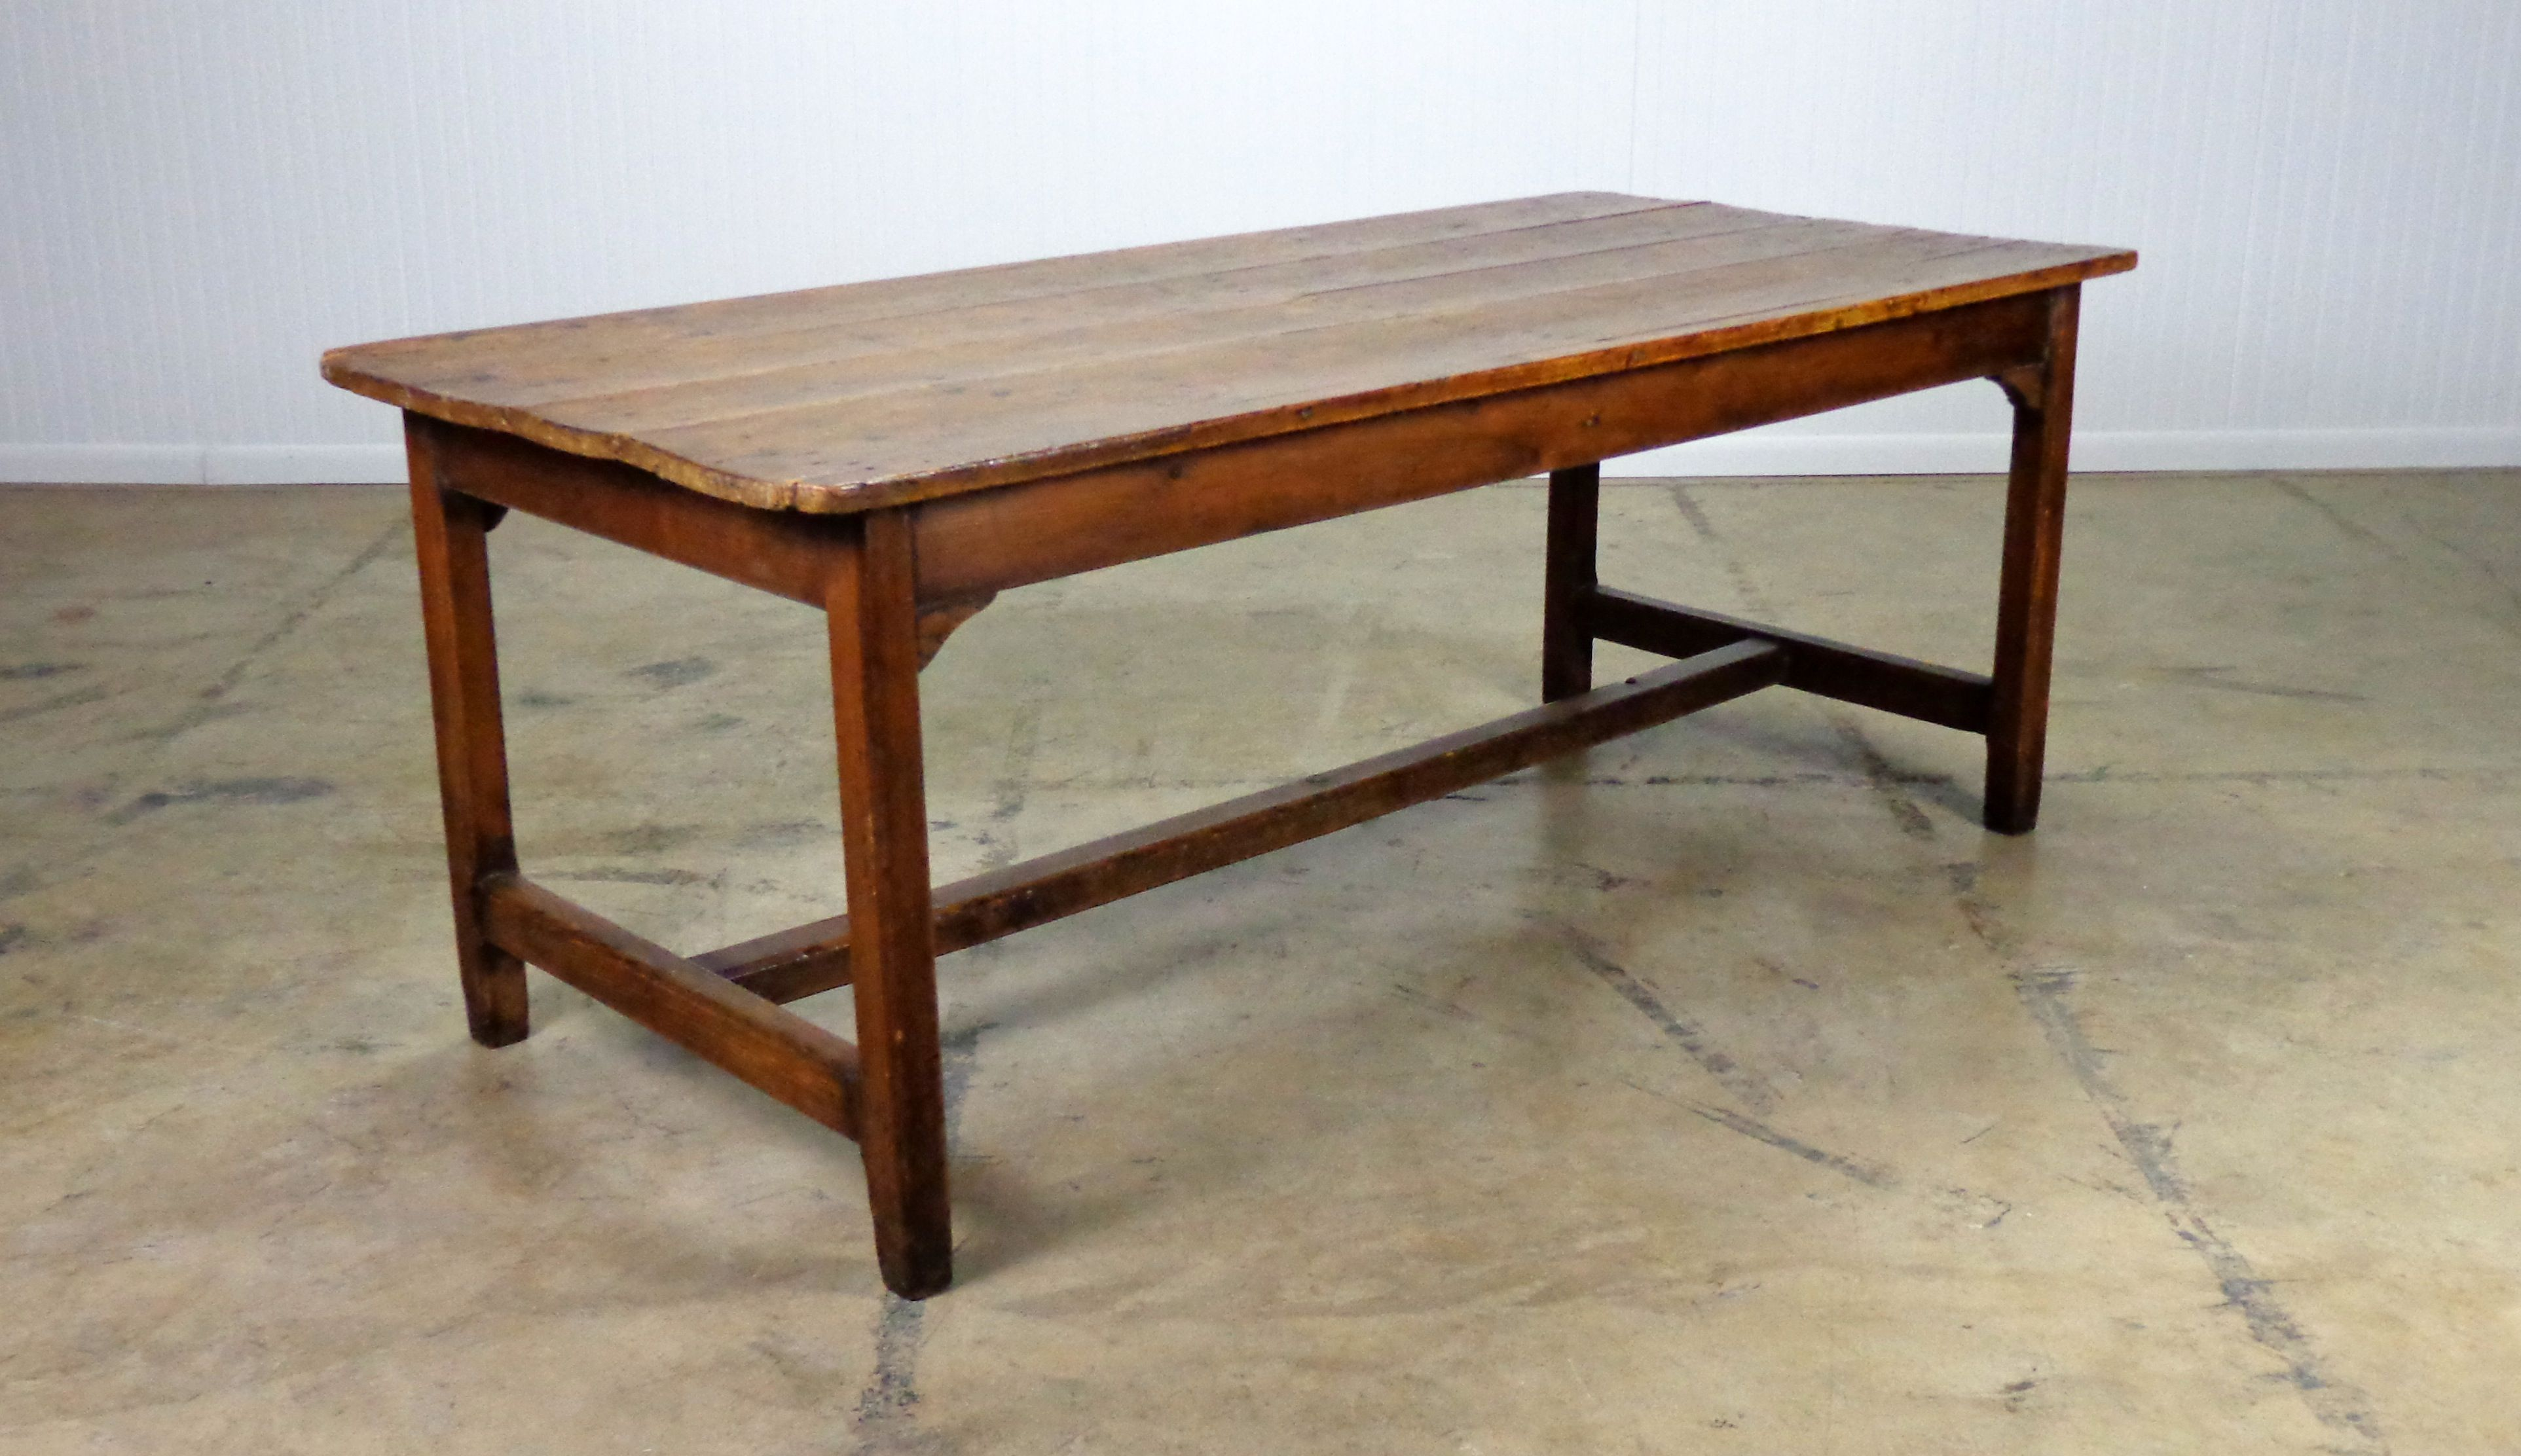 Antique Farm Dining Table Plank Top Made Of Pine And Oak